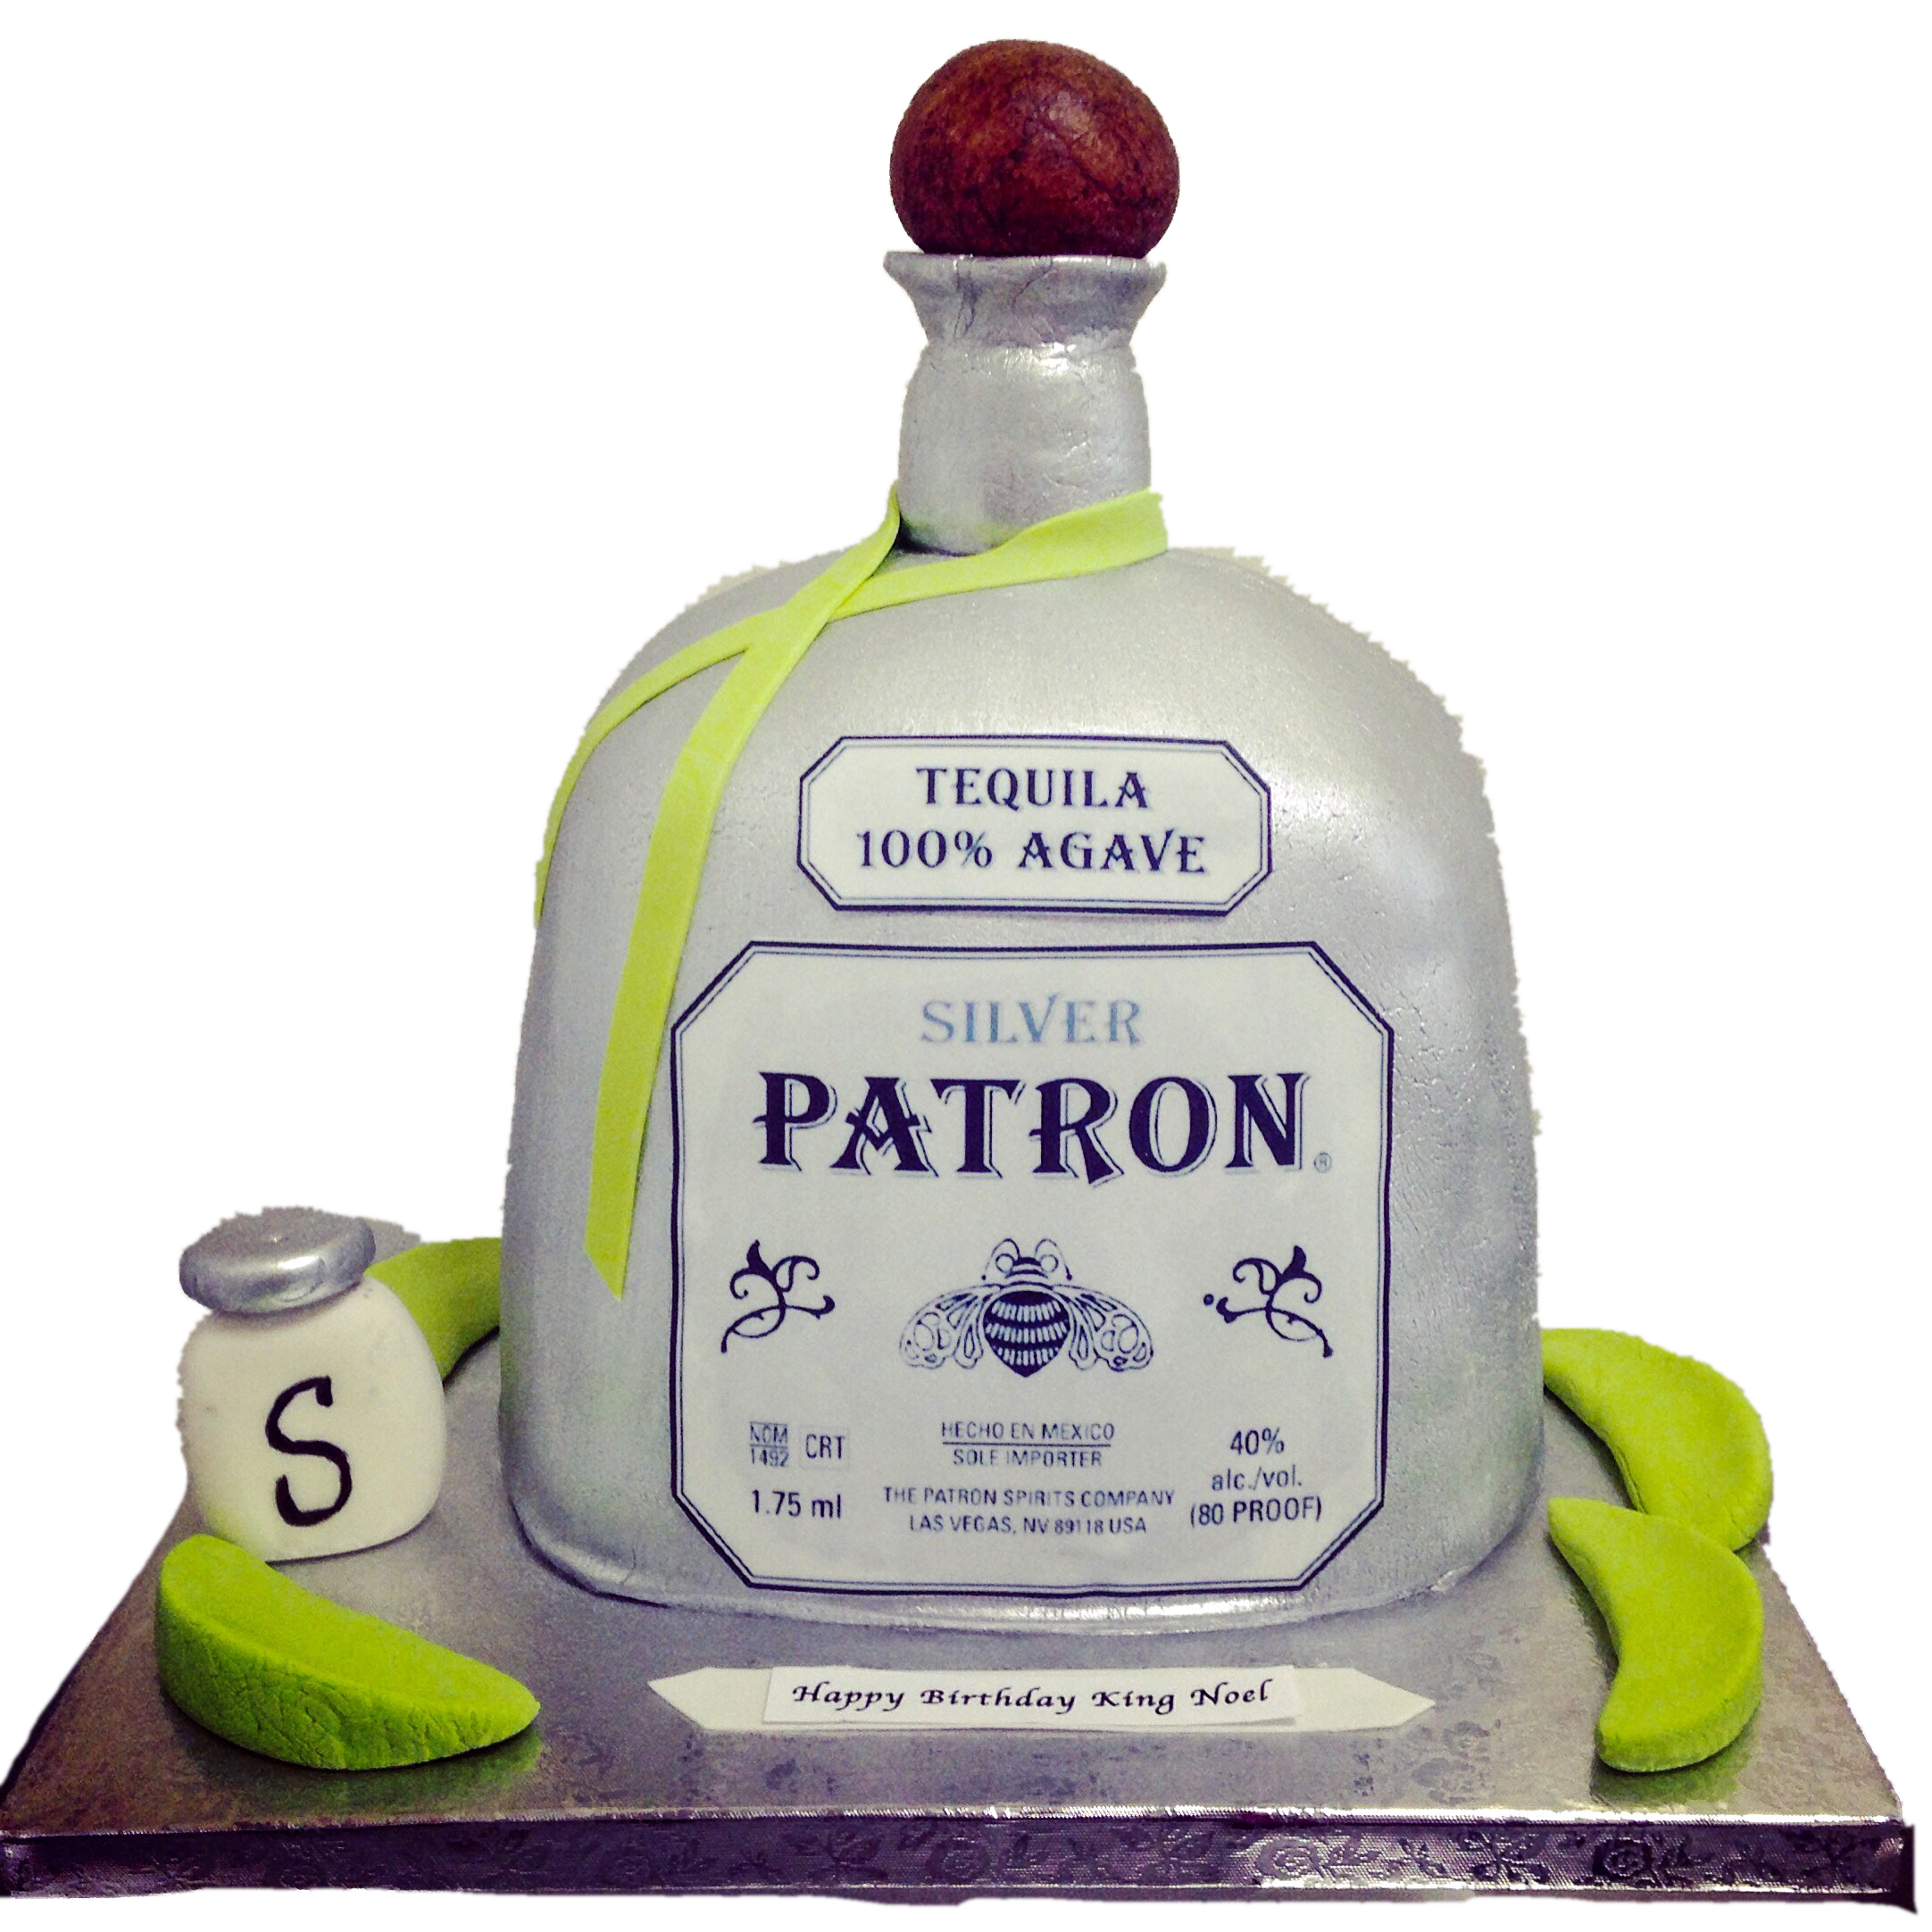 Patron Bottle Cake